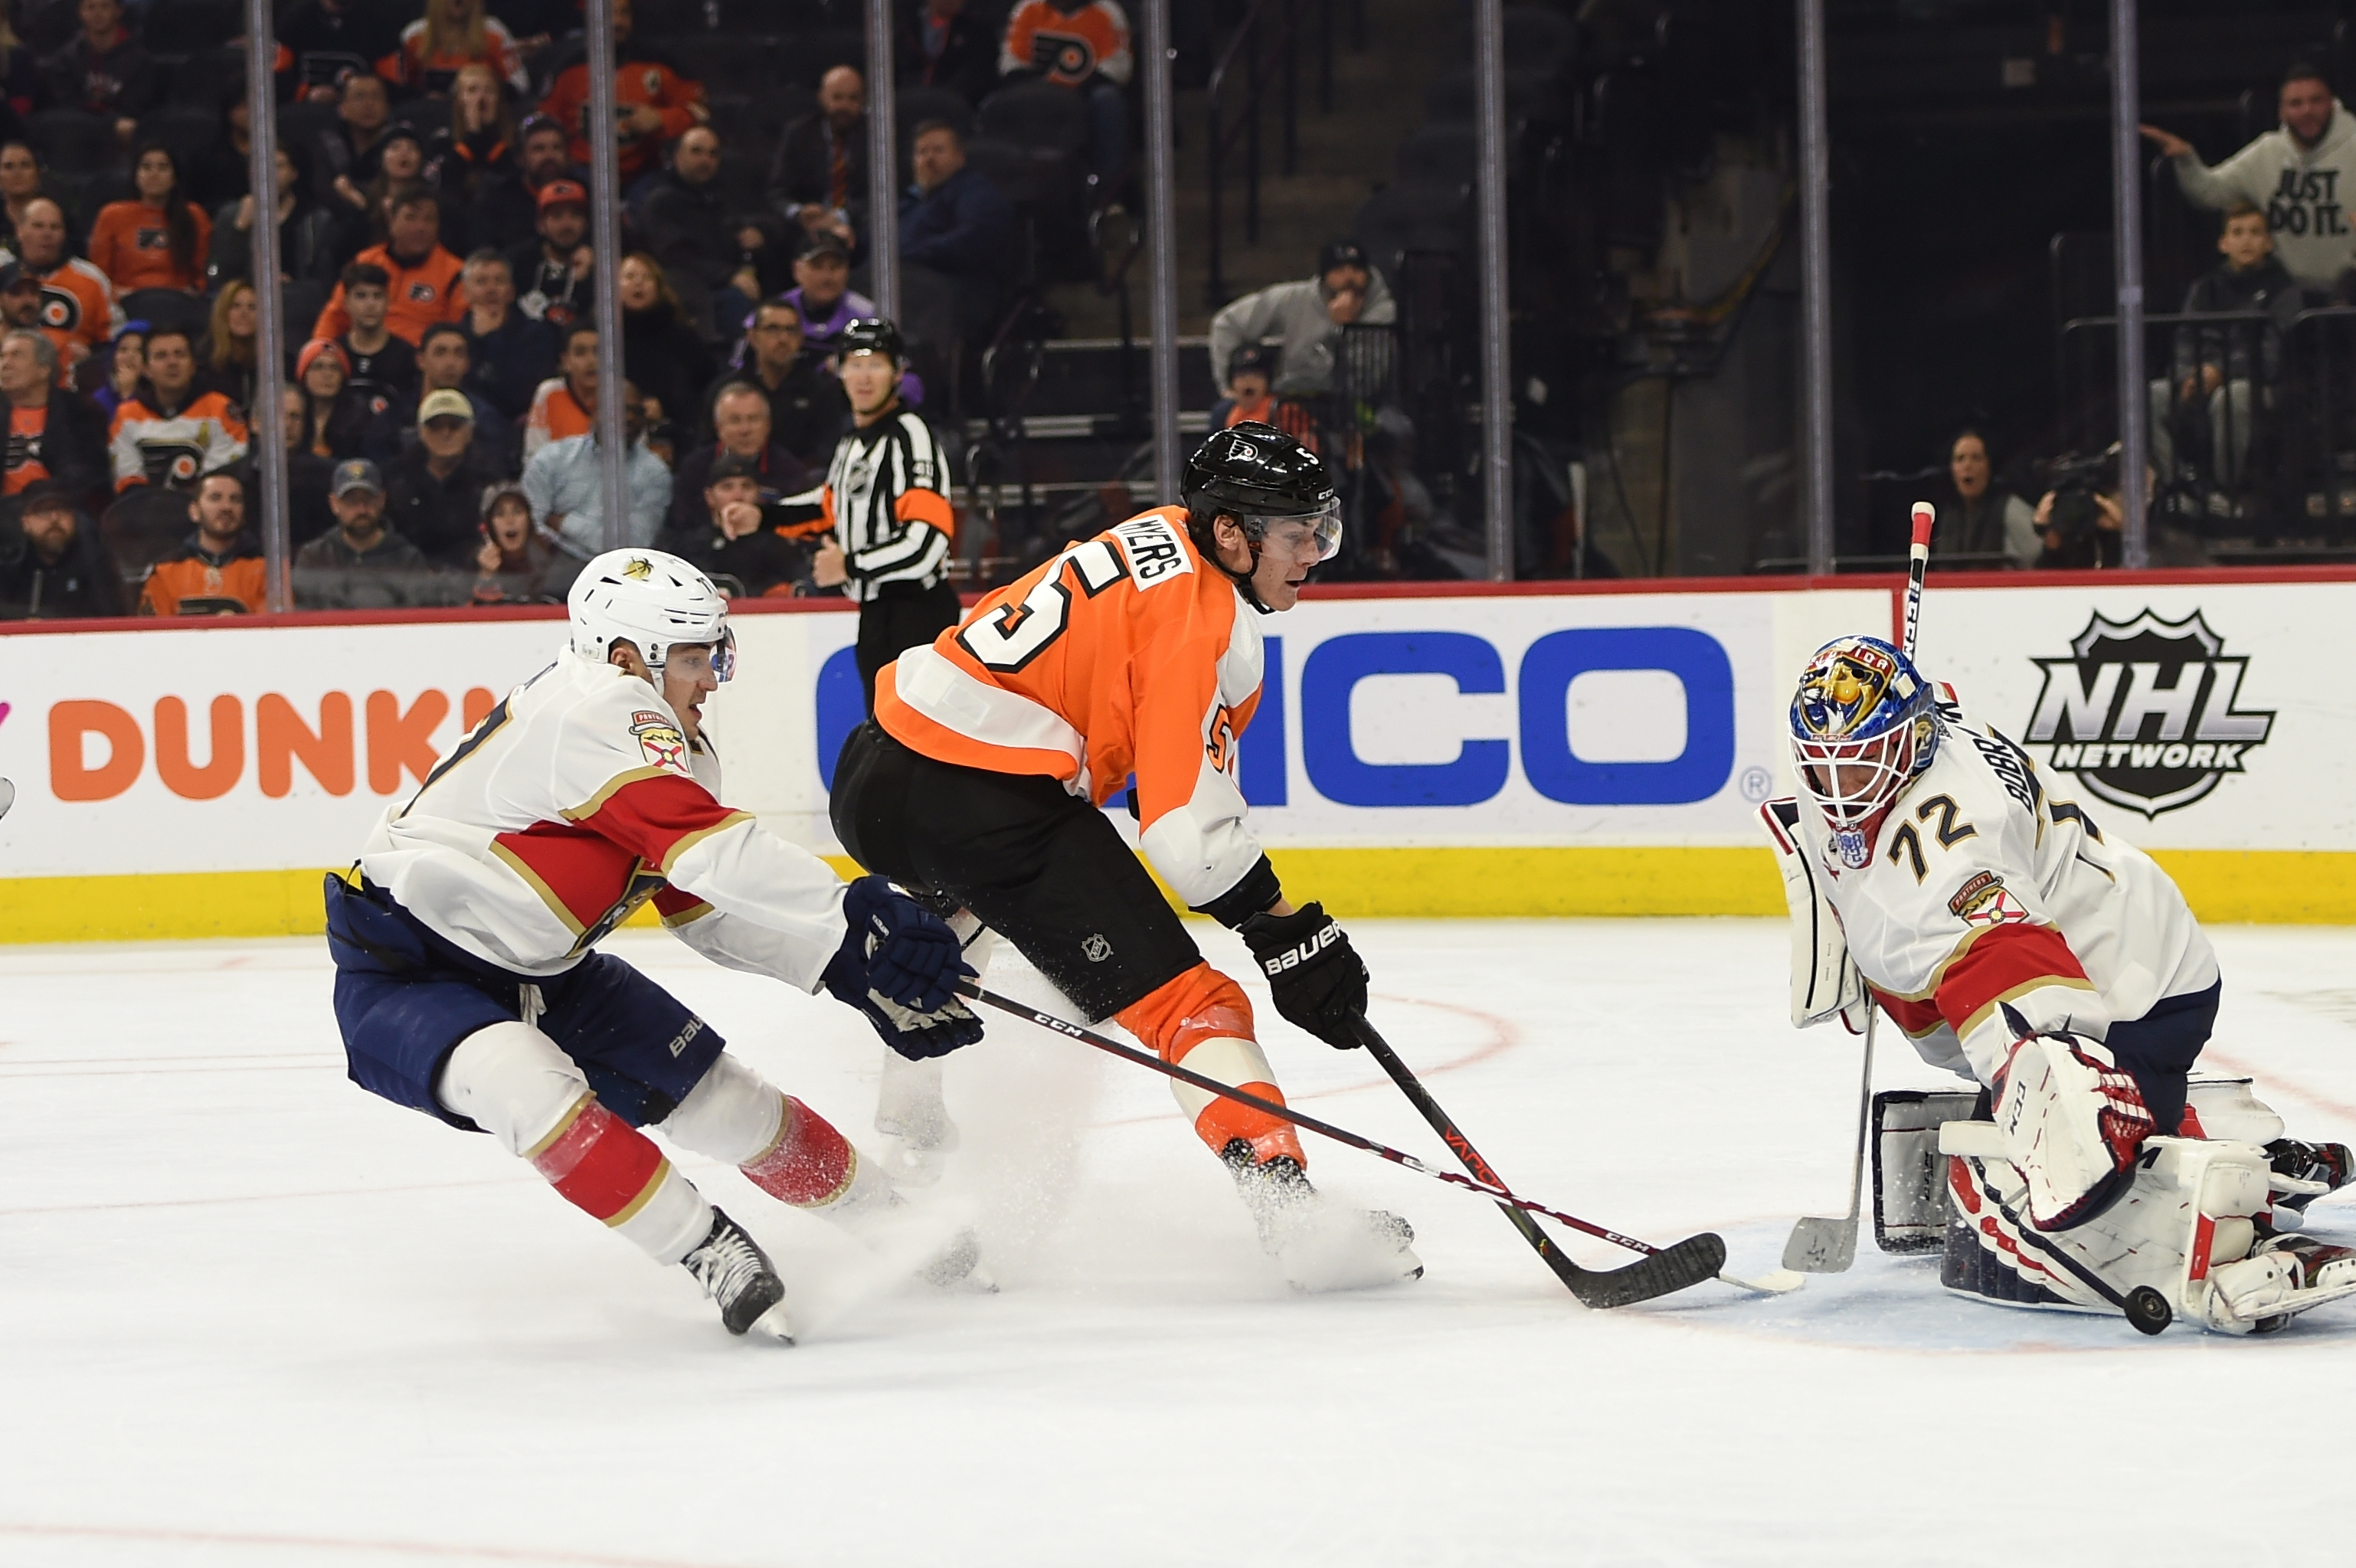 NHL: FEB 10 Panthers at Flyers